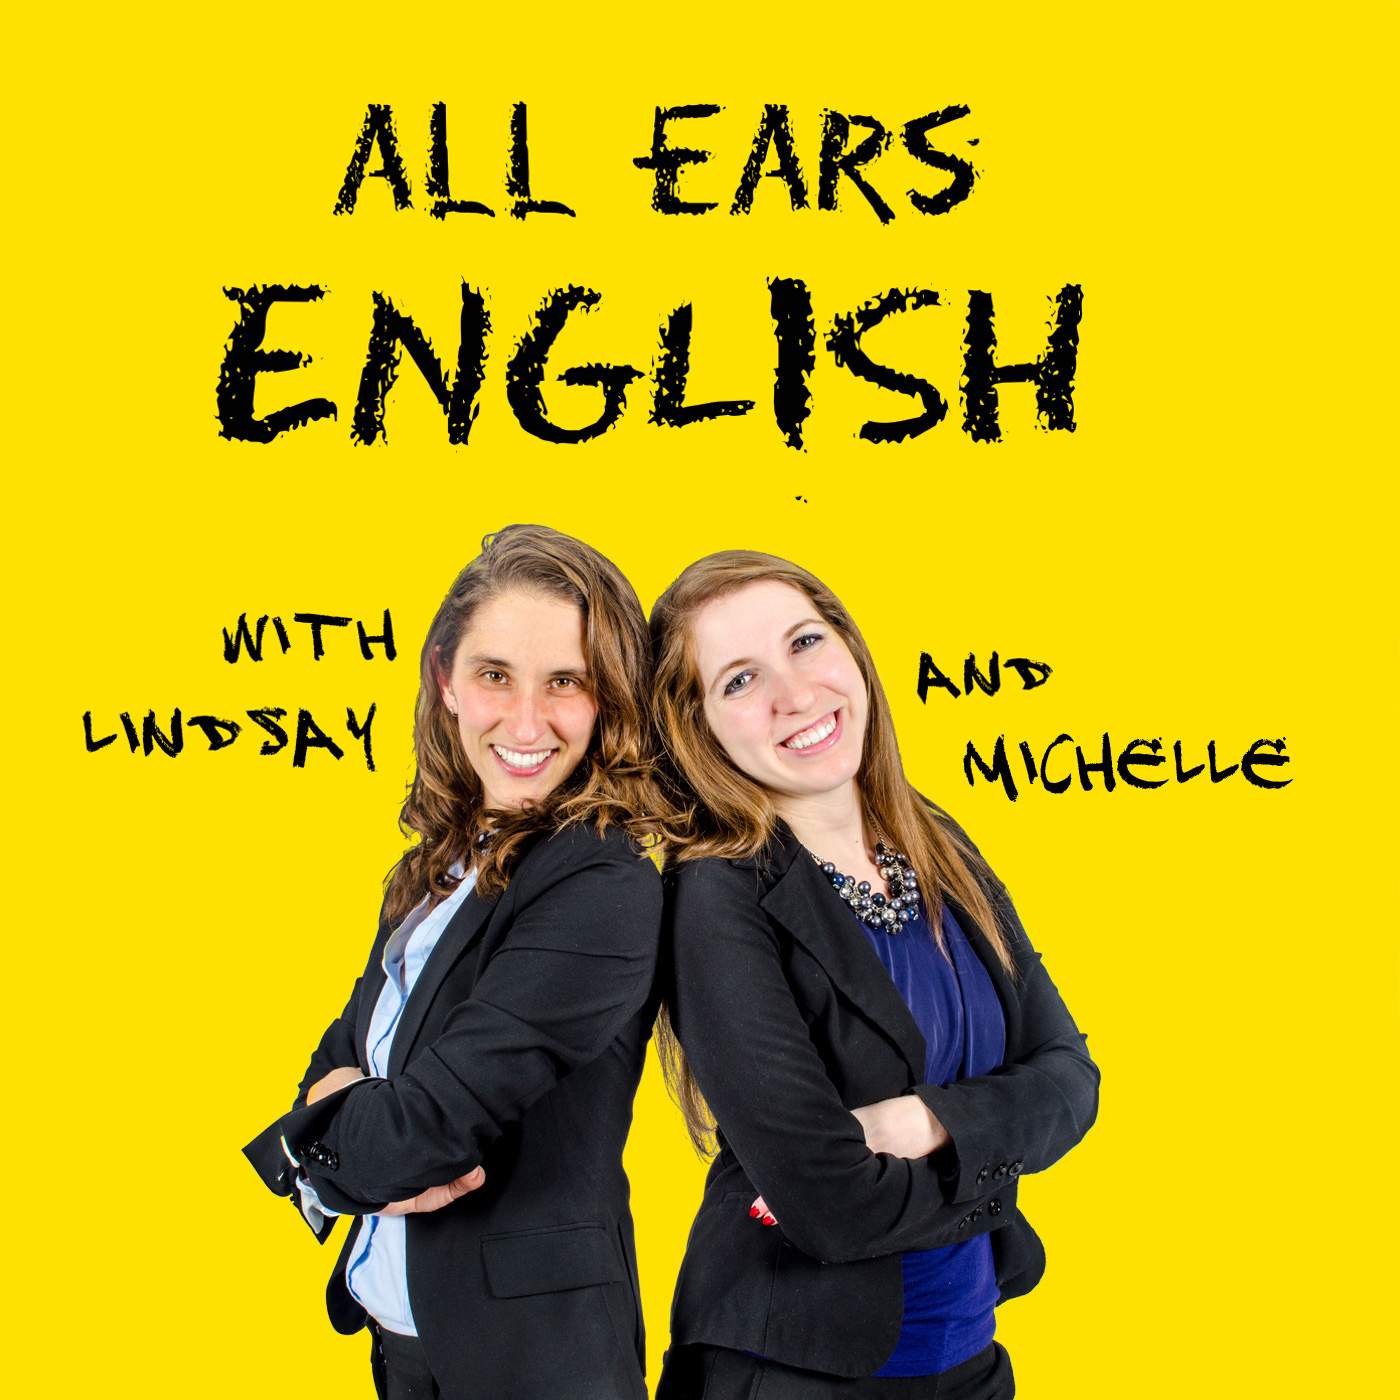 AEE 1398: How to Answer Authentically in English When Someone Asks How You Are